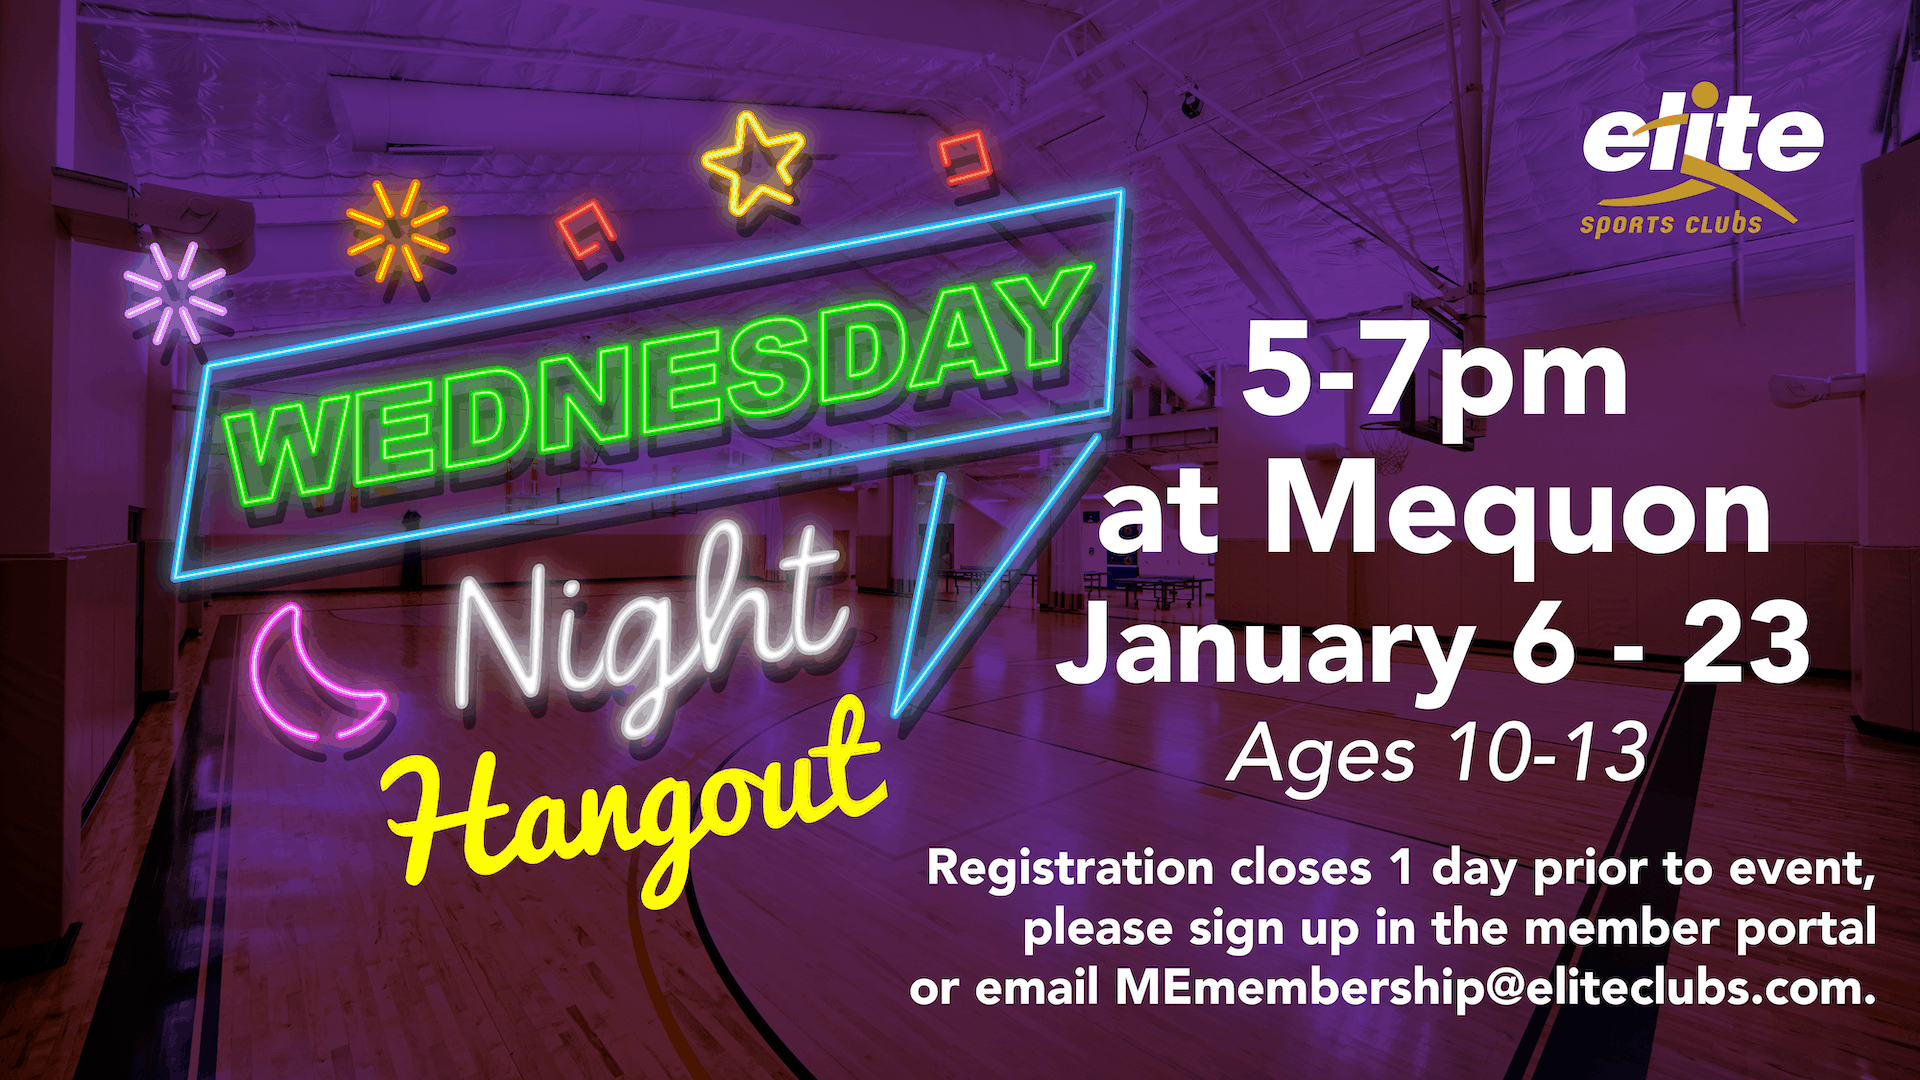 Wednesday Night Hangout - Elite Mequon - January 2021